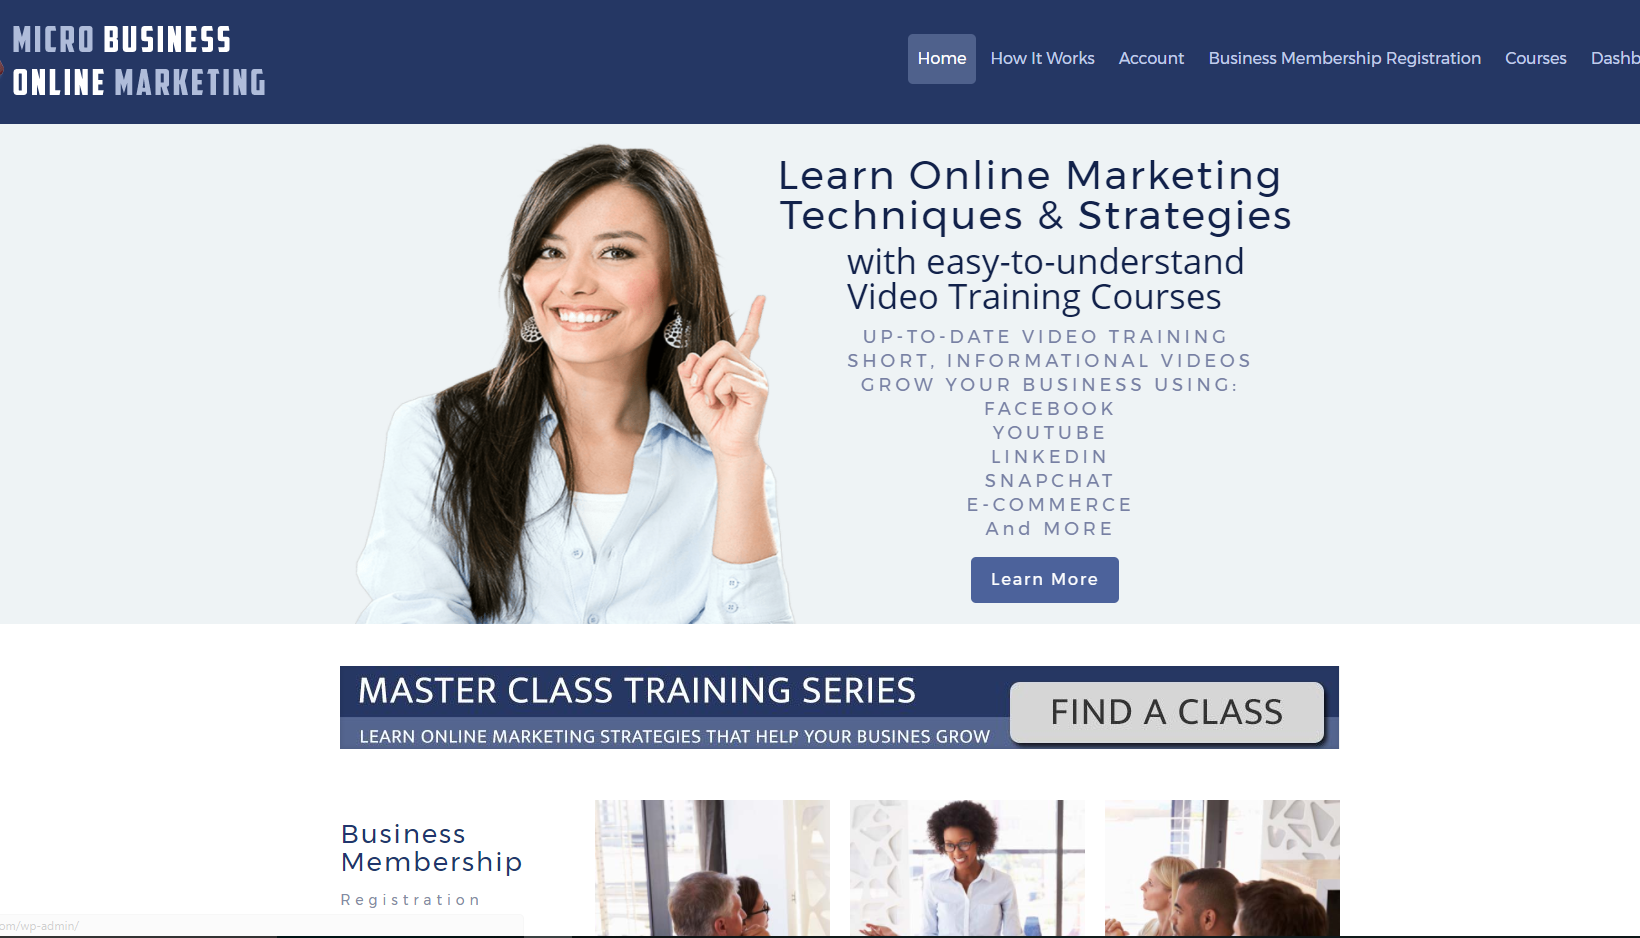 Online Marketing Video Training Courses